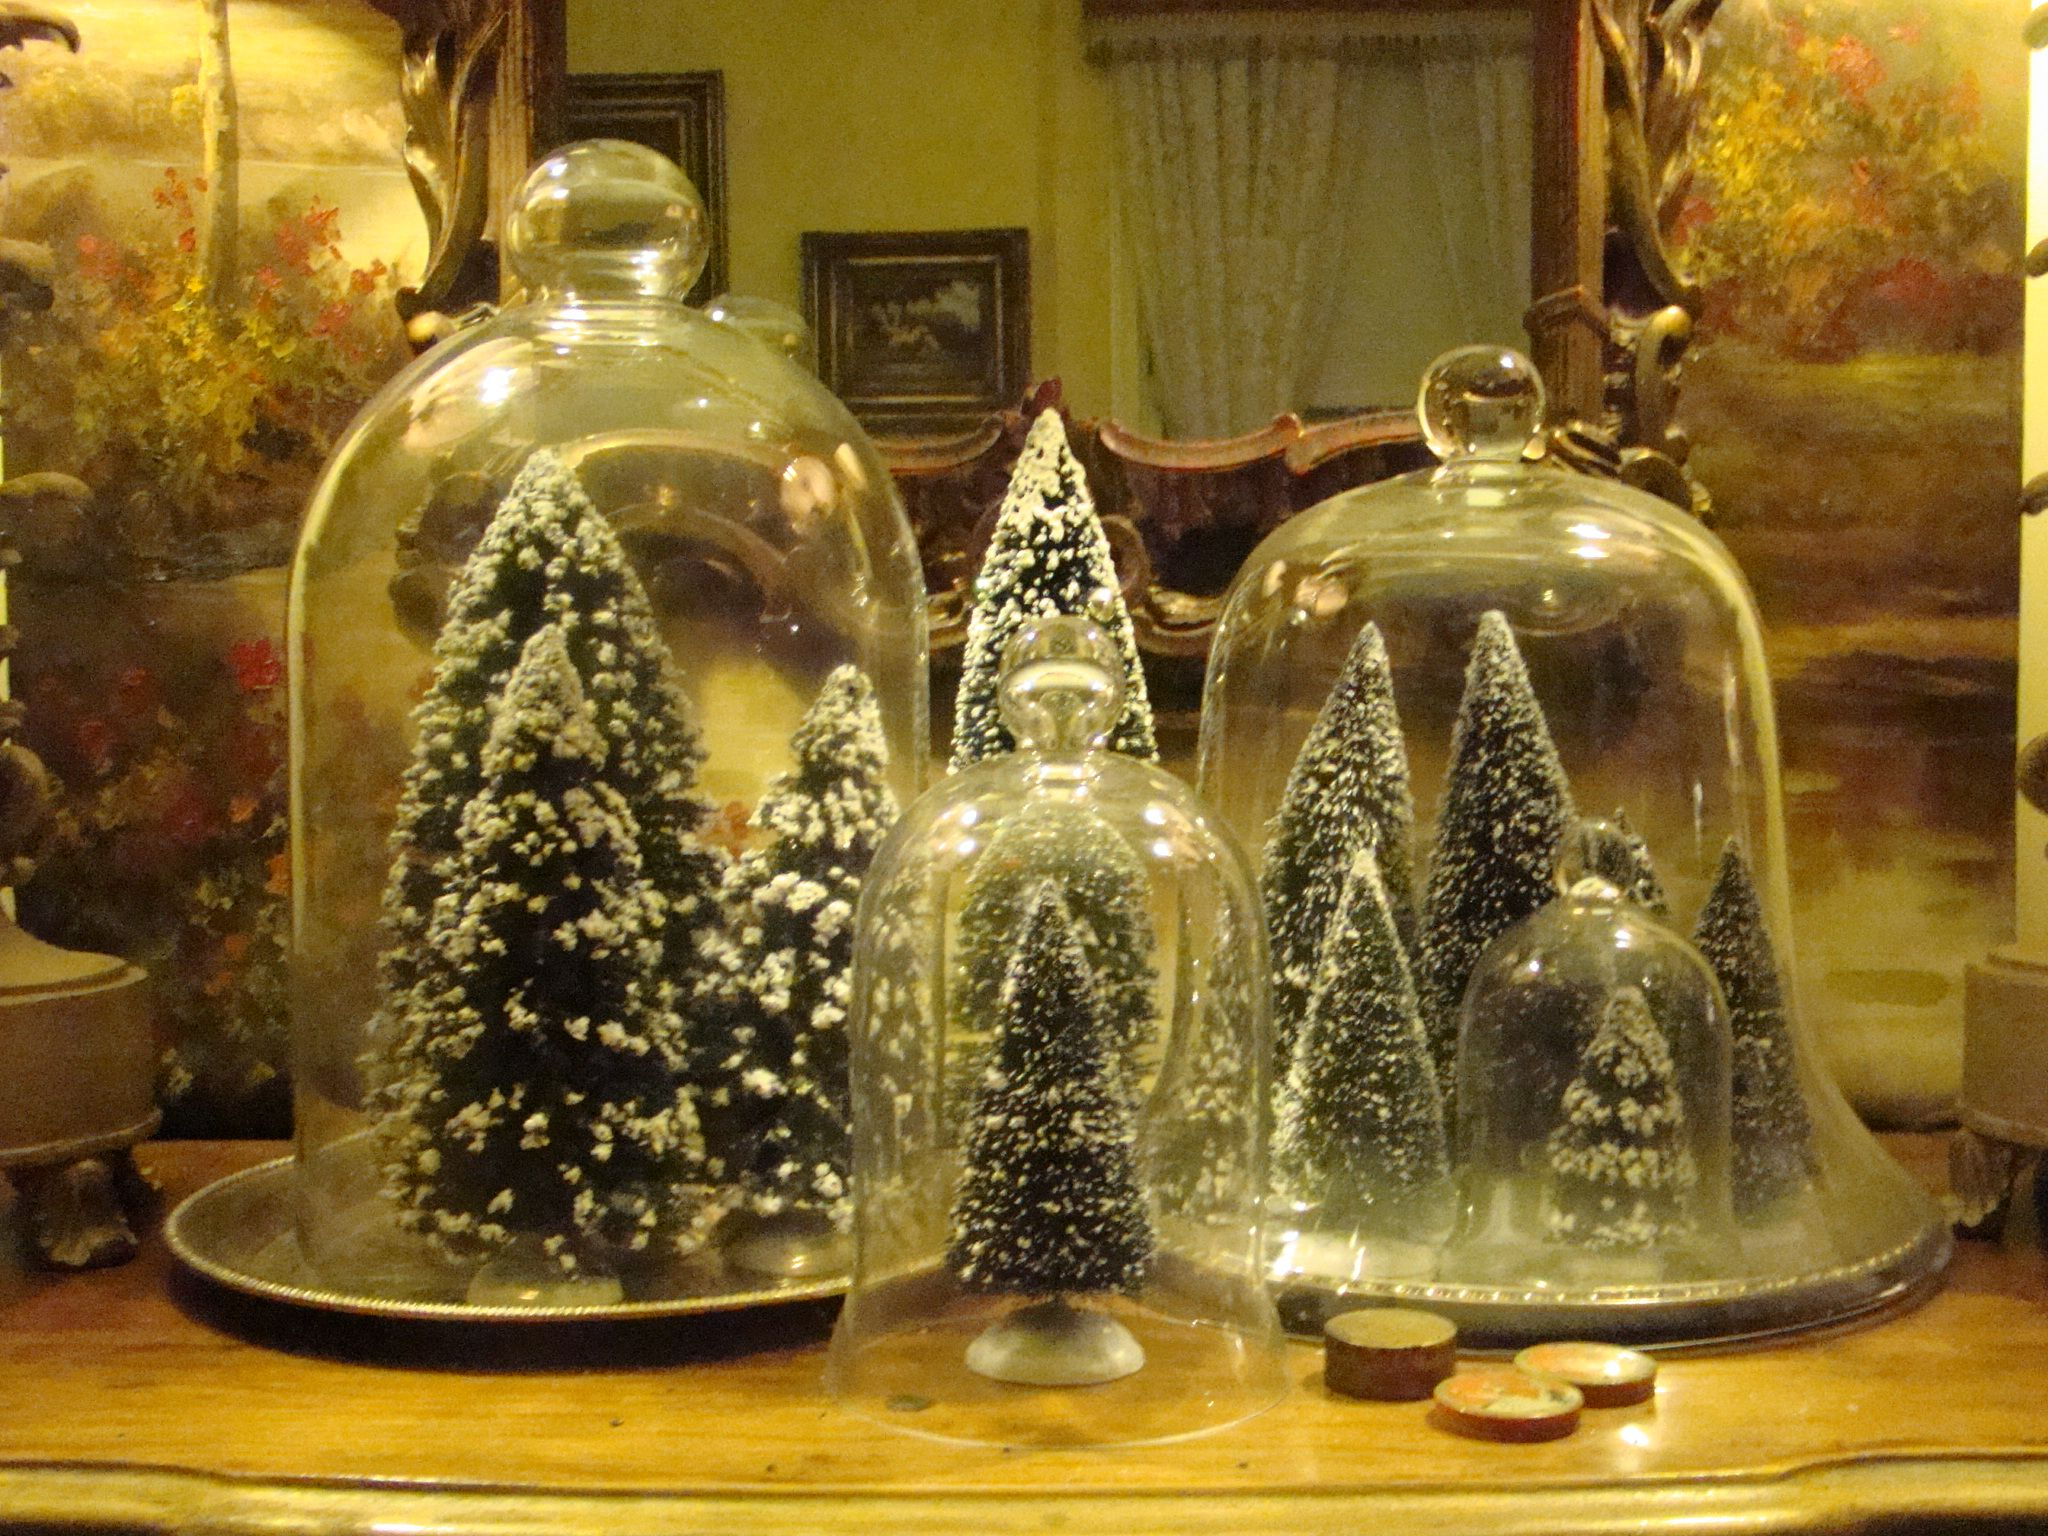 Lovely Christmas cloche display~ The cloche was originally used as a covering for protecting plants from cold temperatures.